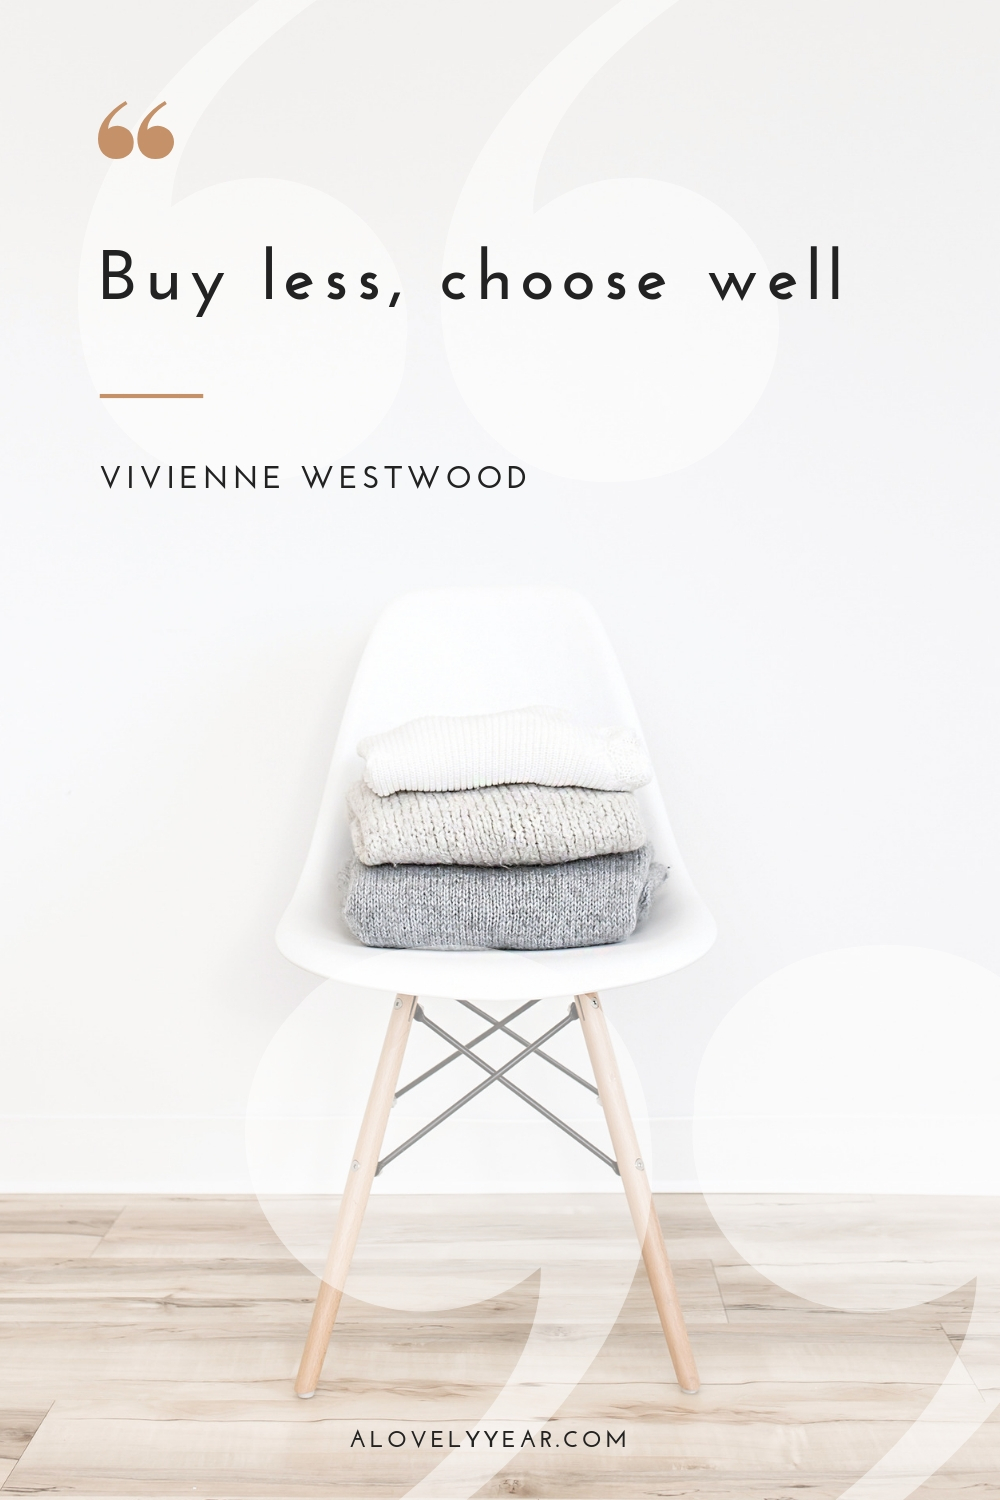 Decluttering quotes to inspire you into action | Buy less, choose well - Vivienne Westwood